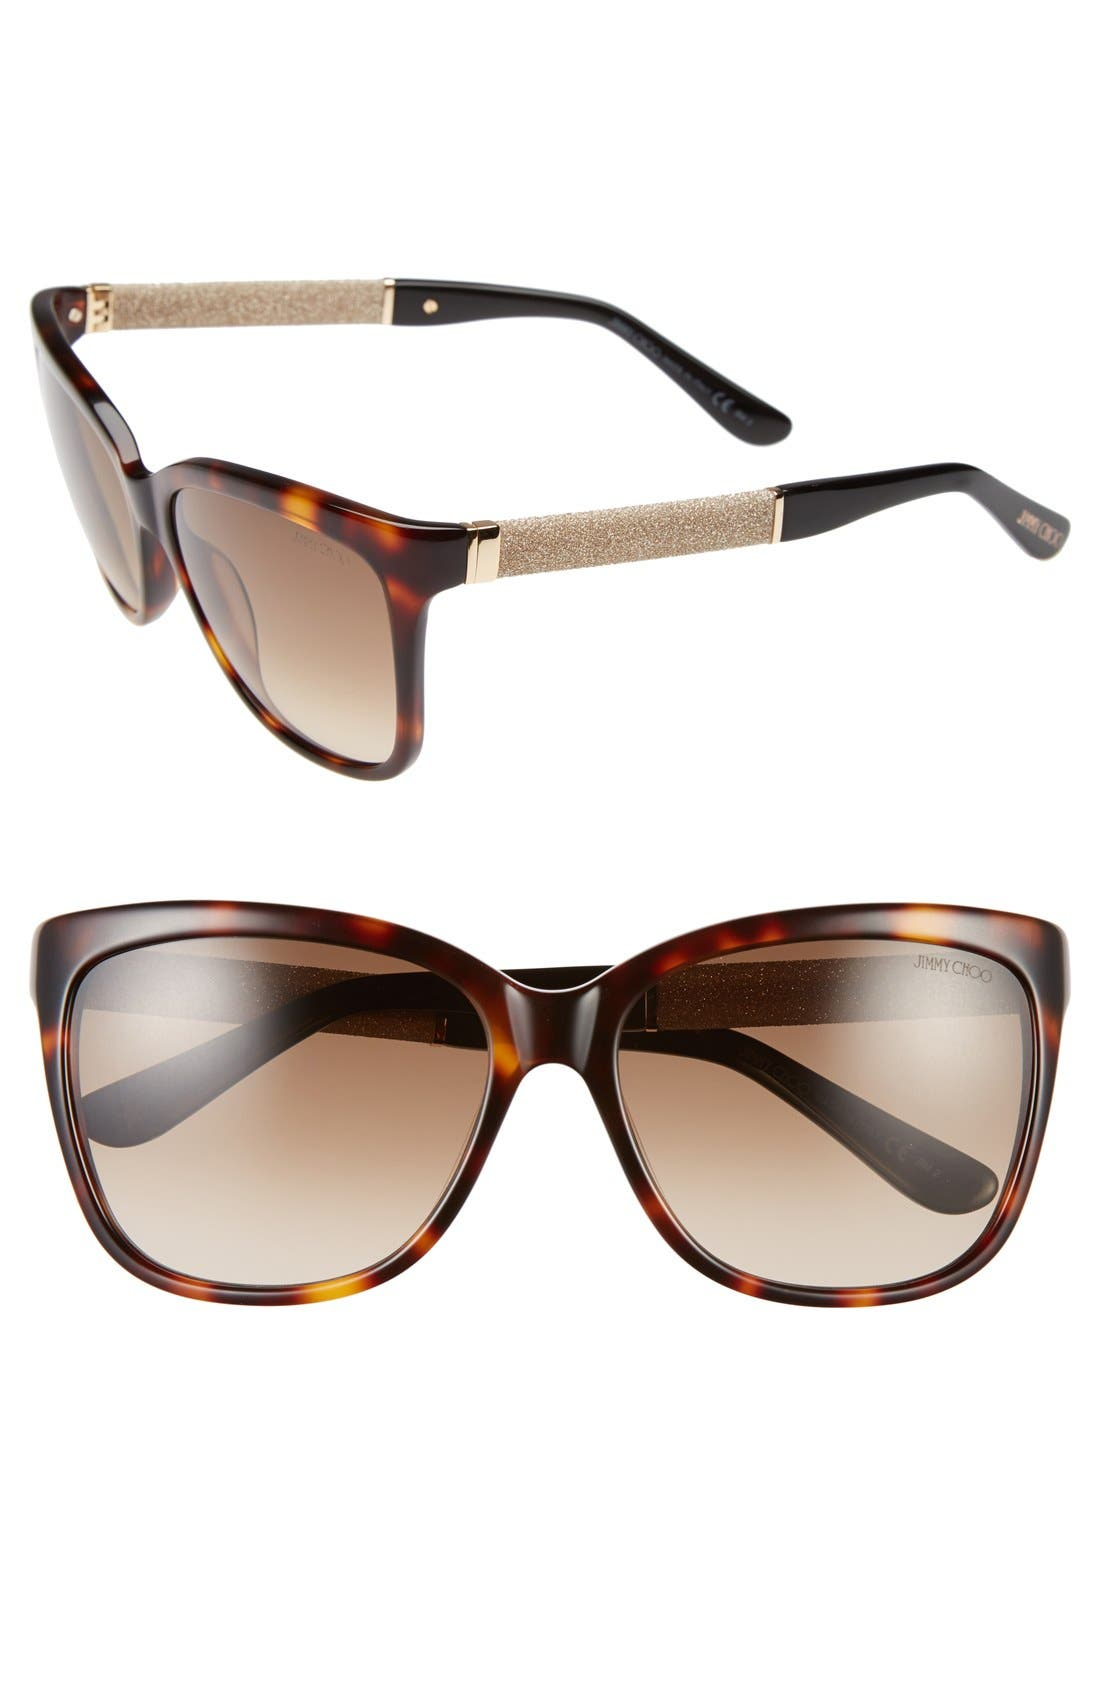 JIMMY CHOO Coras 56mm Retro Sunglasses